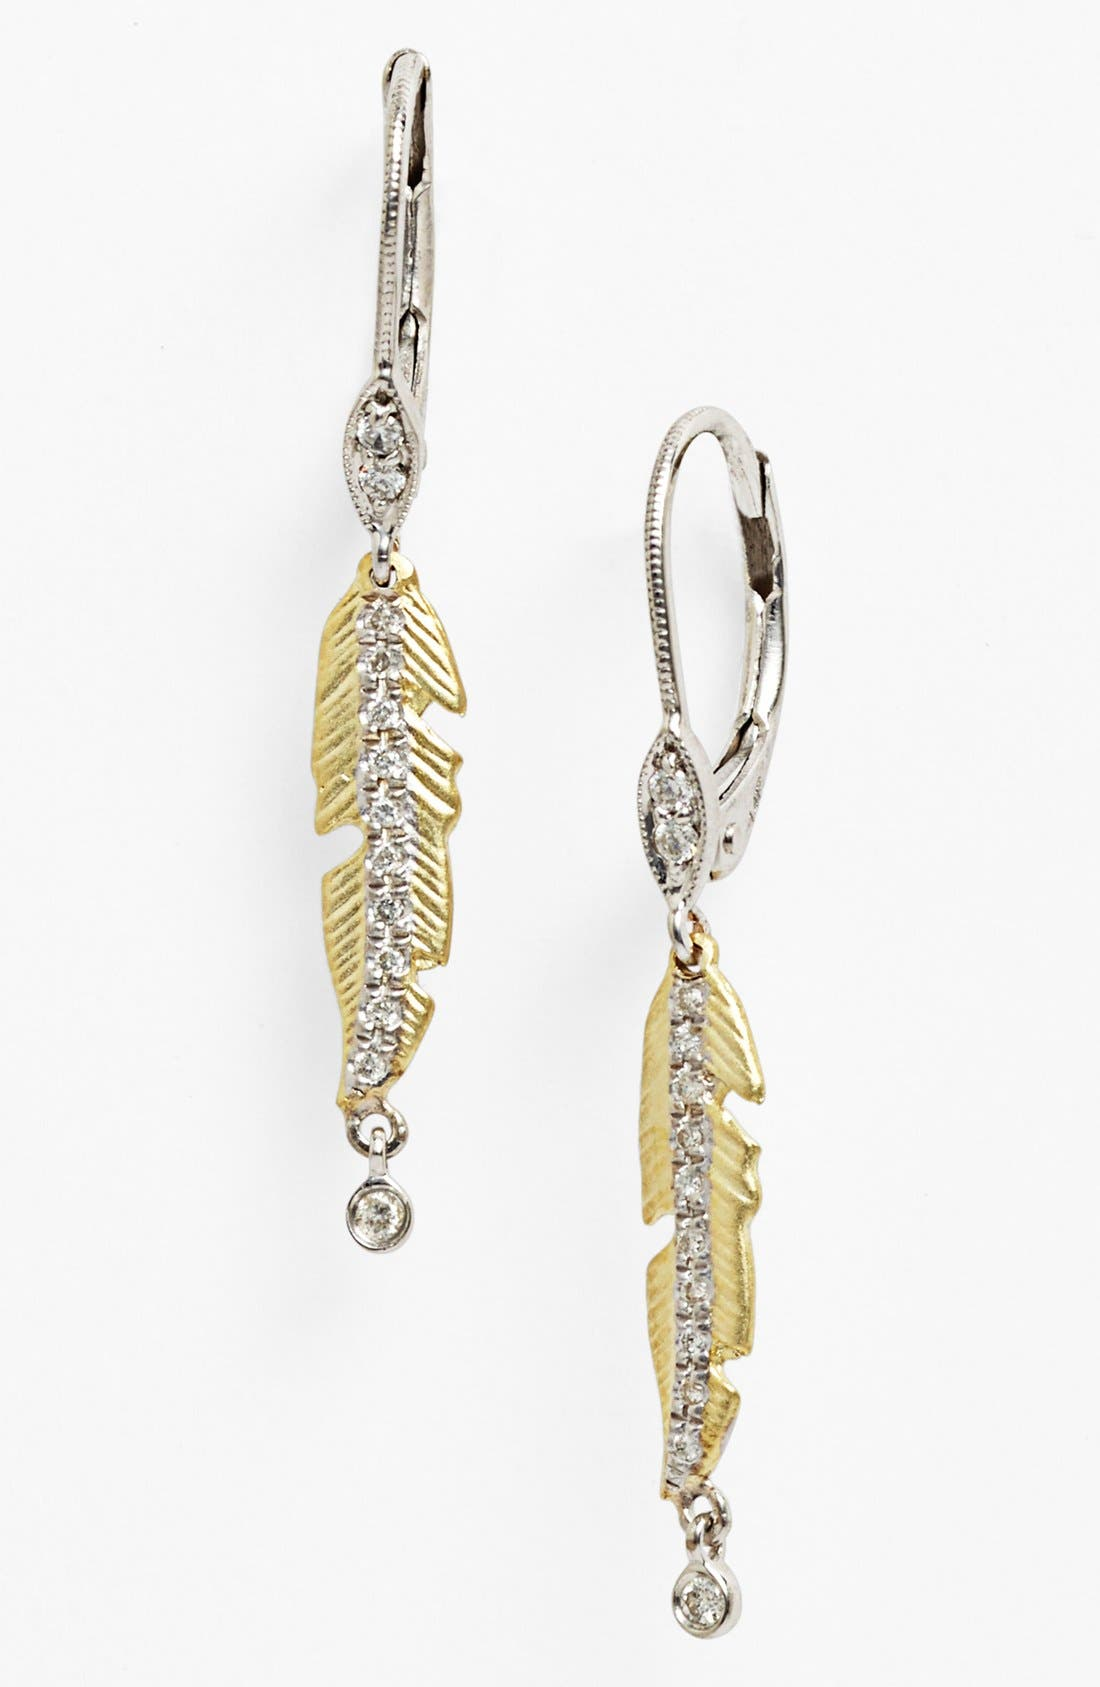 Main Image - MeiraT 'Charmed' Diamond Leaf Linear Earrings